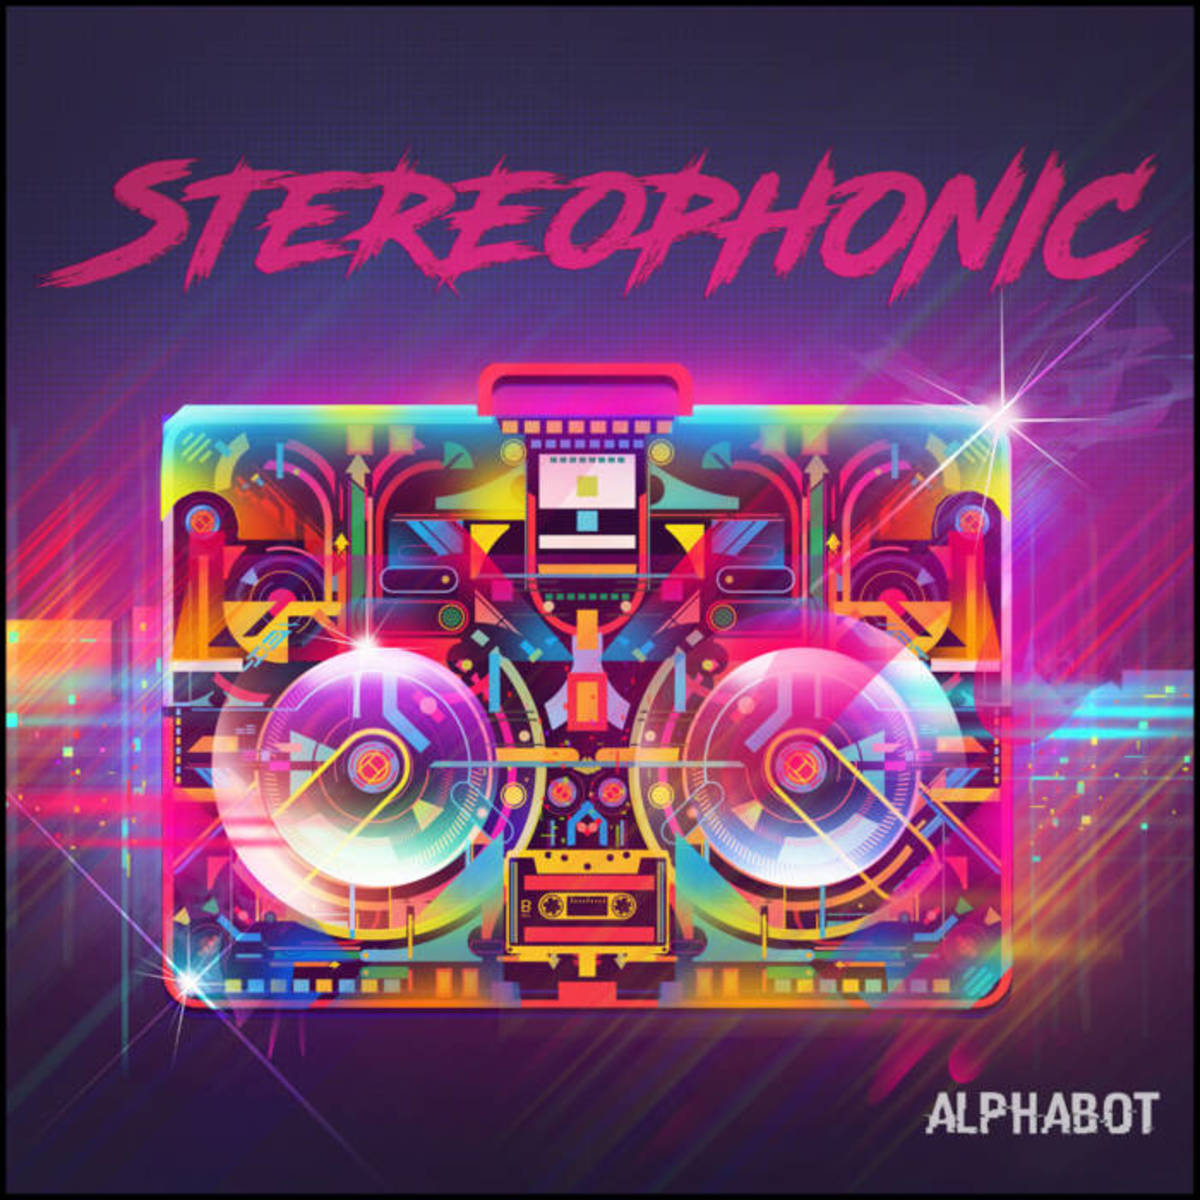 """Synthwave Single Review: Alphabot, """"Stereophonic"""""""